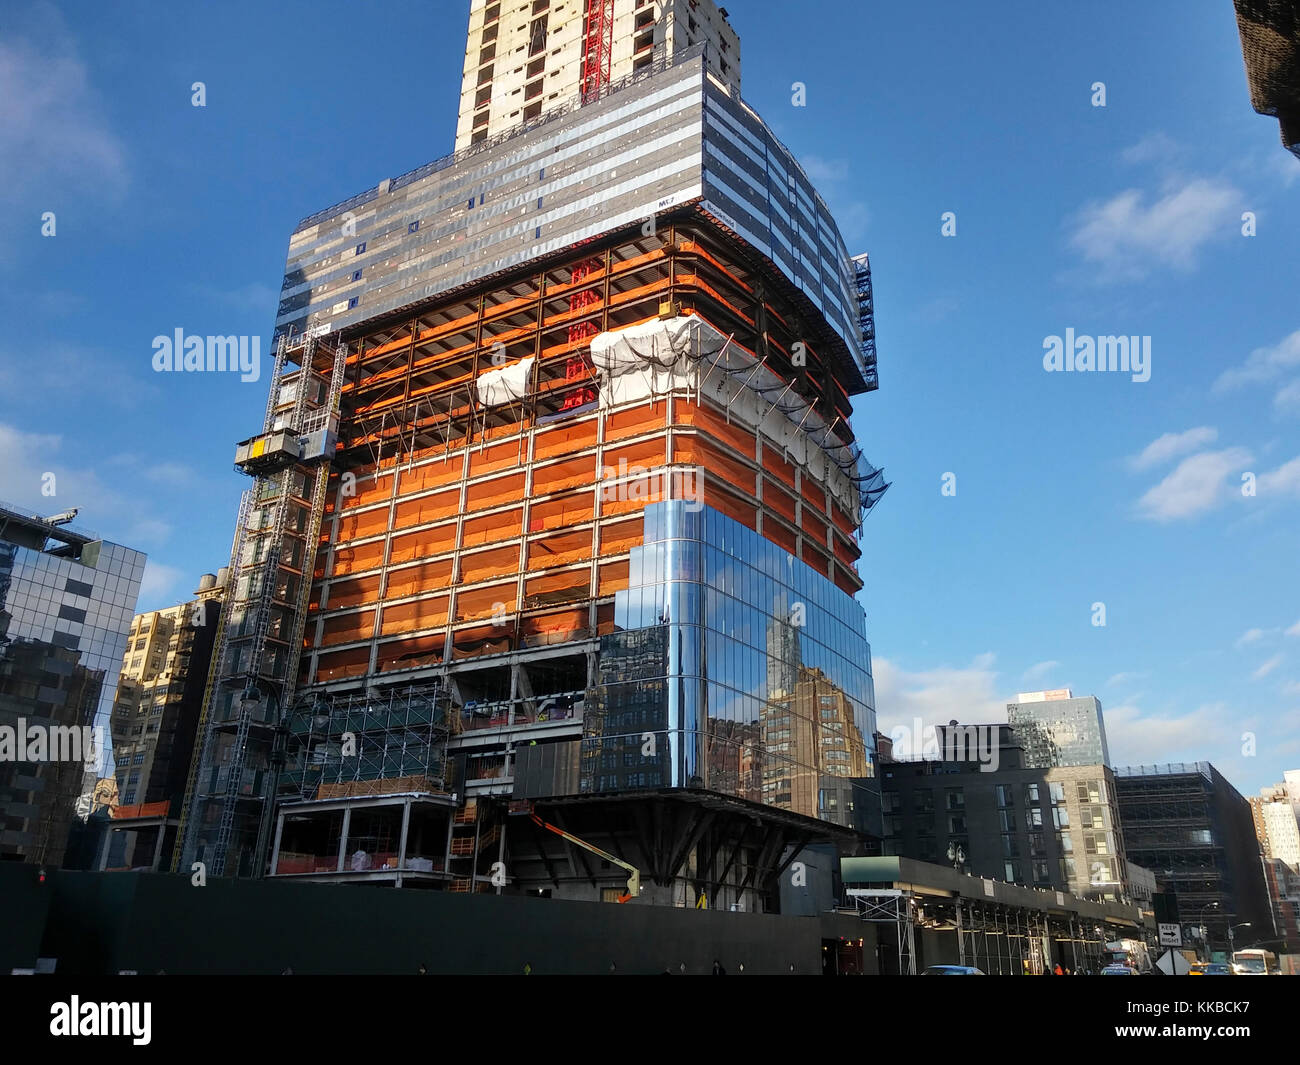 Brookfield's Manhattan West development in New York on Tuesday, November 28, 2017. Navillus, the site contractor, - Stock Image